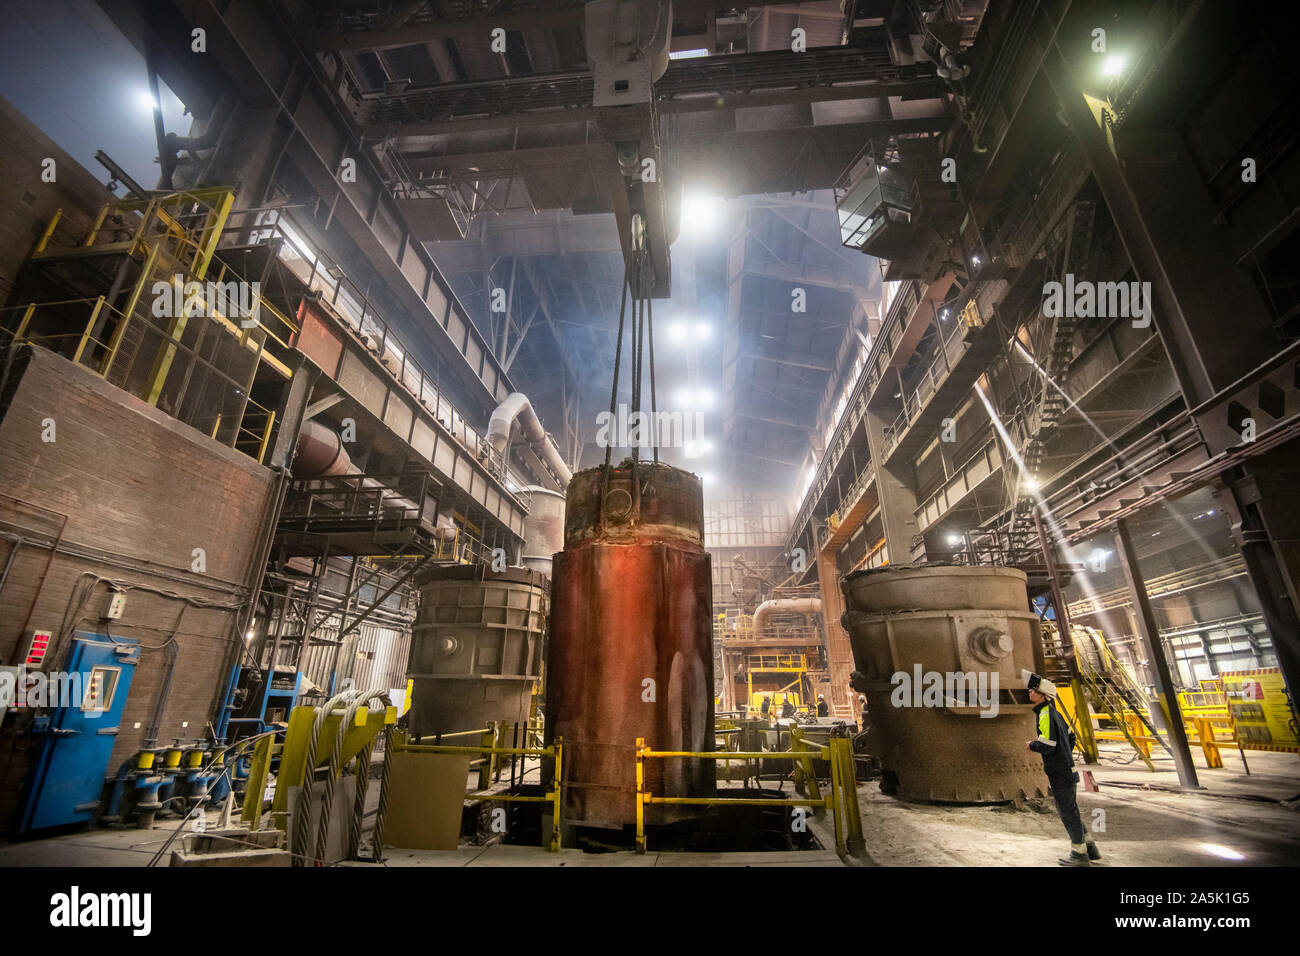 200 ton red hot steel ingot being lifted from mould in steelworks Stock Photo